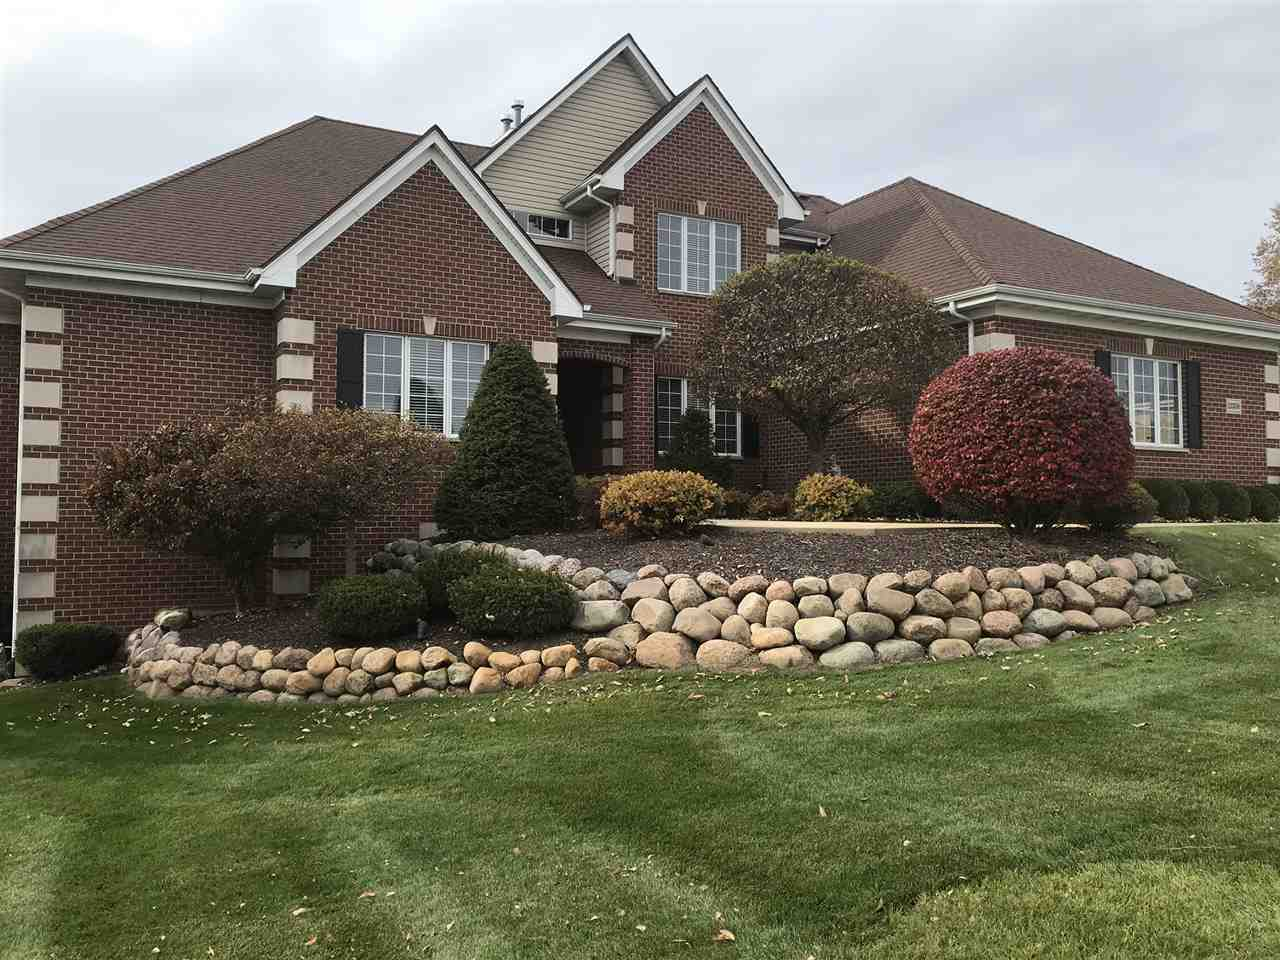 Property for sale at 12336 BELLINGHAM, CALEDONIA,  IL 61011